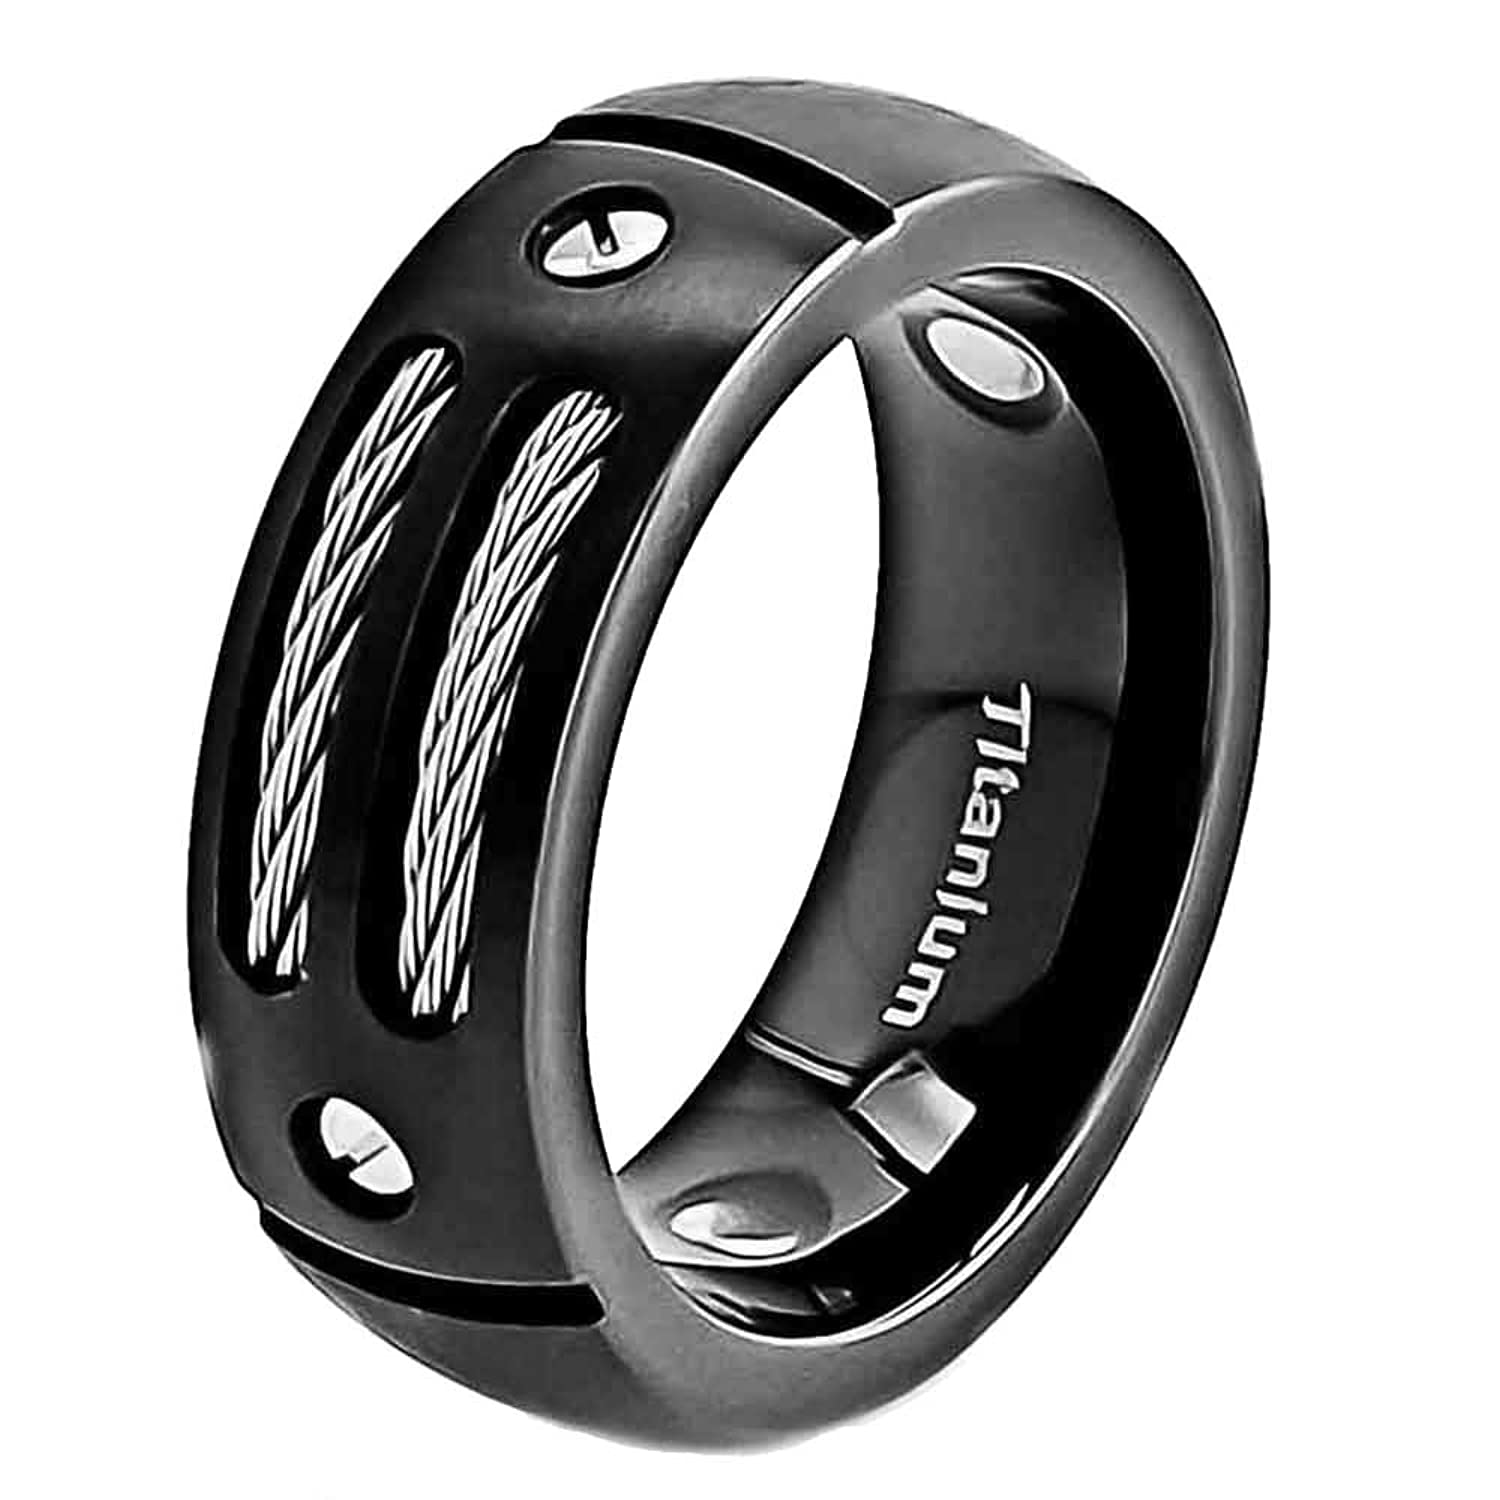 product comfort and free oliveti jewelry carbon watches cubic with mens titanium s on men zirconia band design overstock fiber fit orders black shipping rings over wedding dragon ring